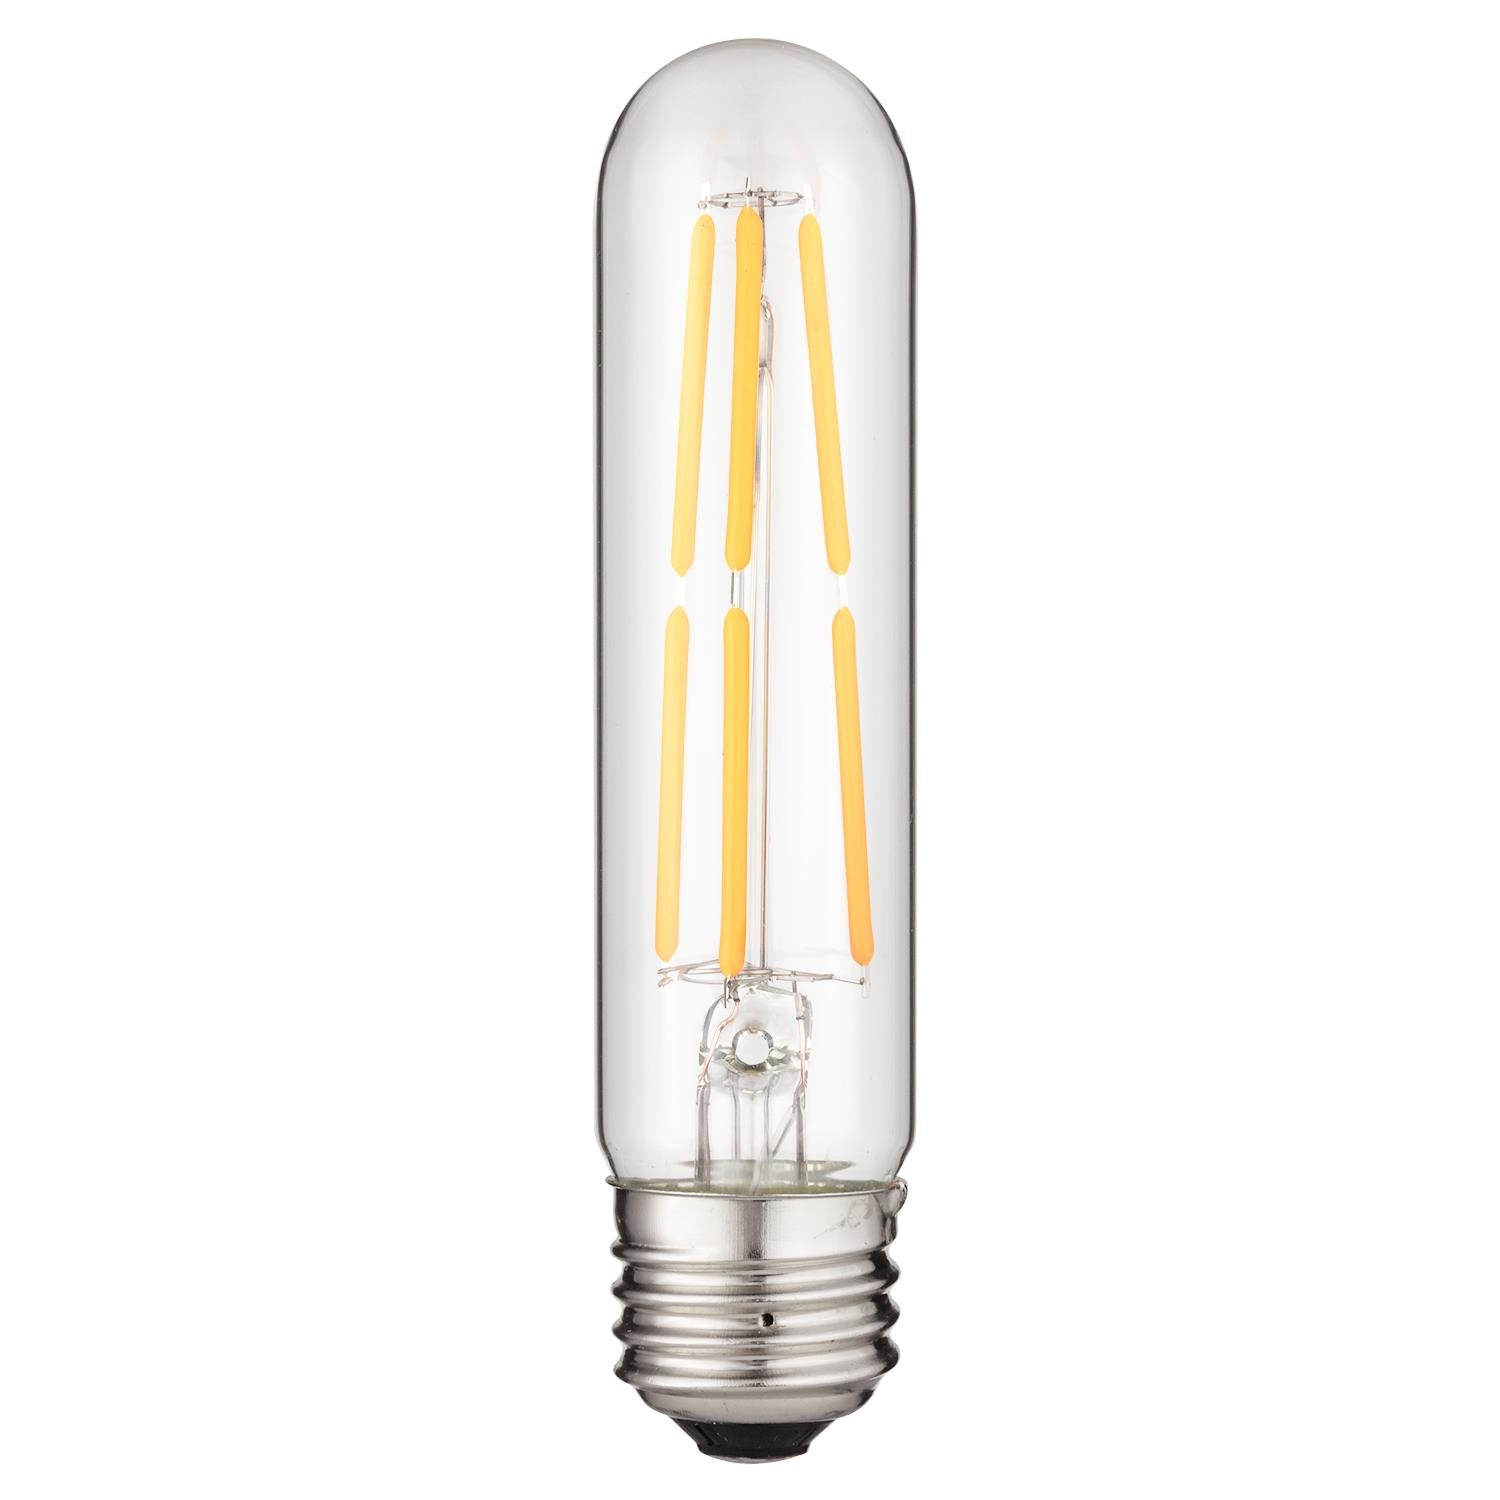 SUNLITE 80612-SU LED Vintage T10 5w Light Bulb Medium (E26) Base Warm Whit